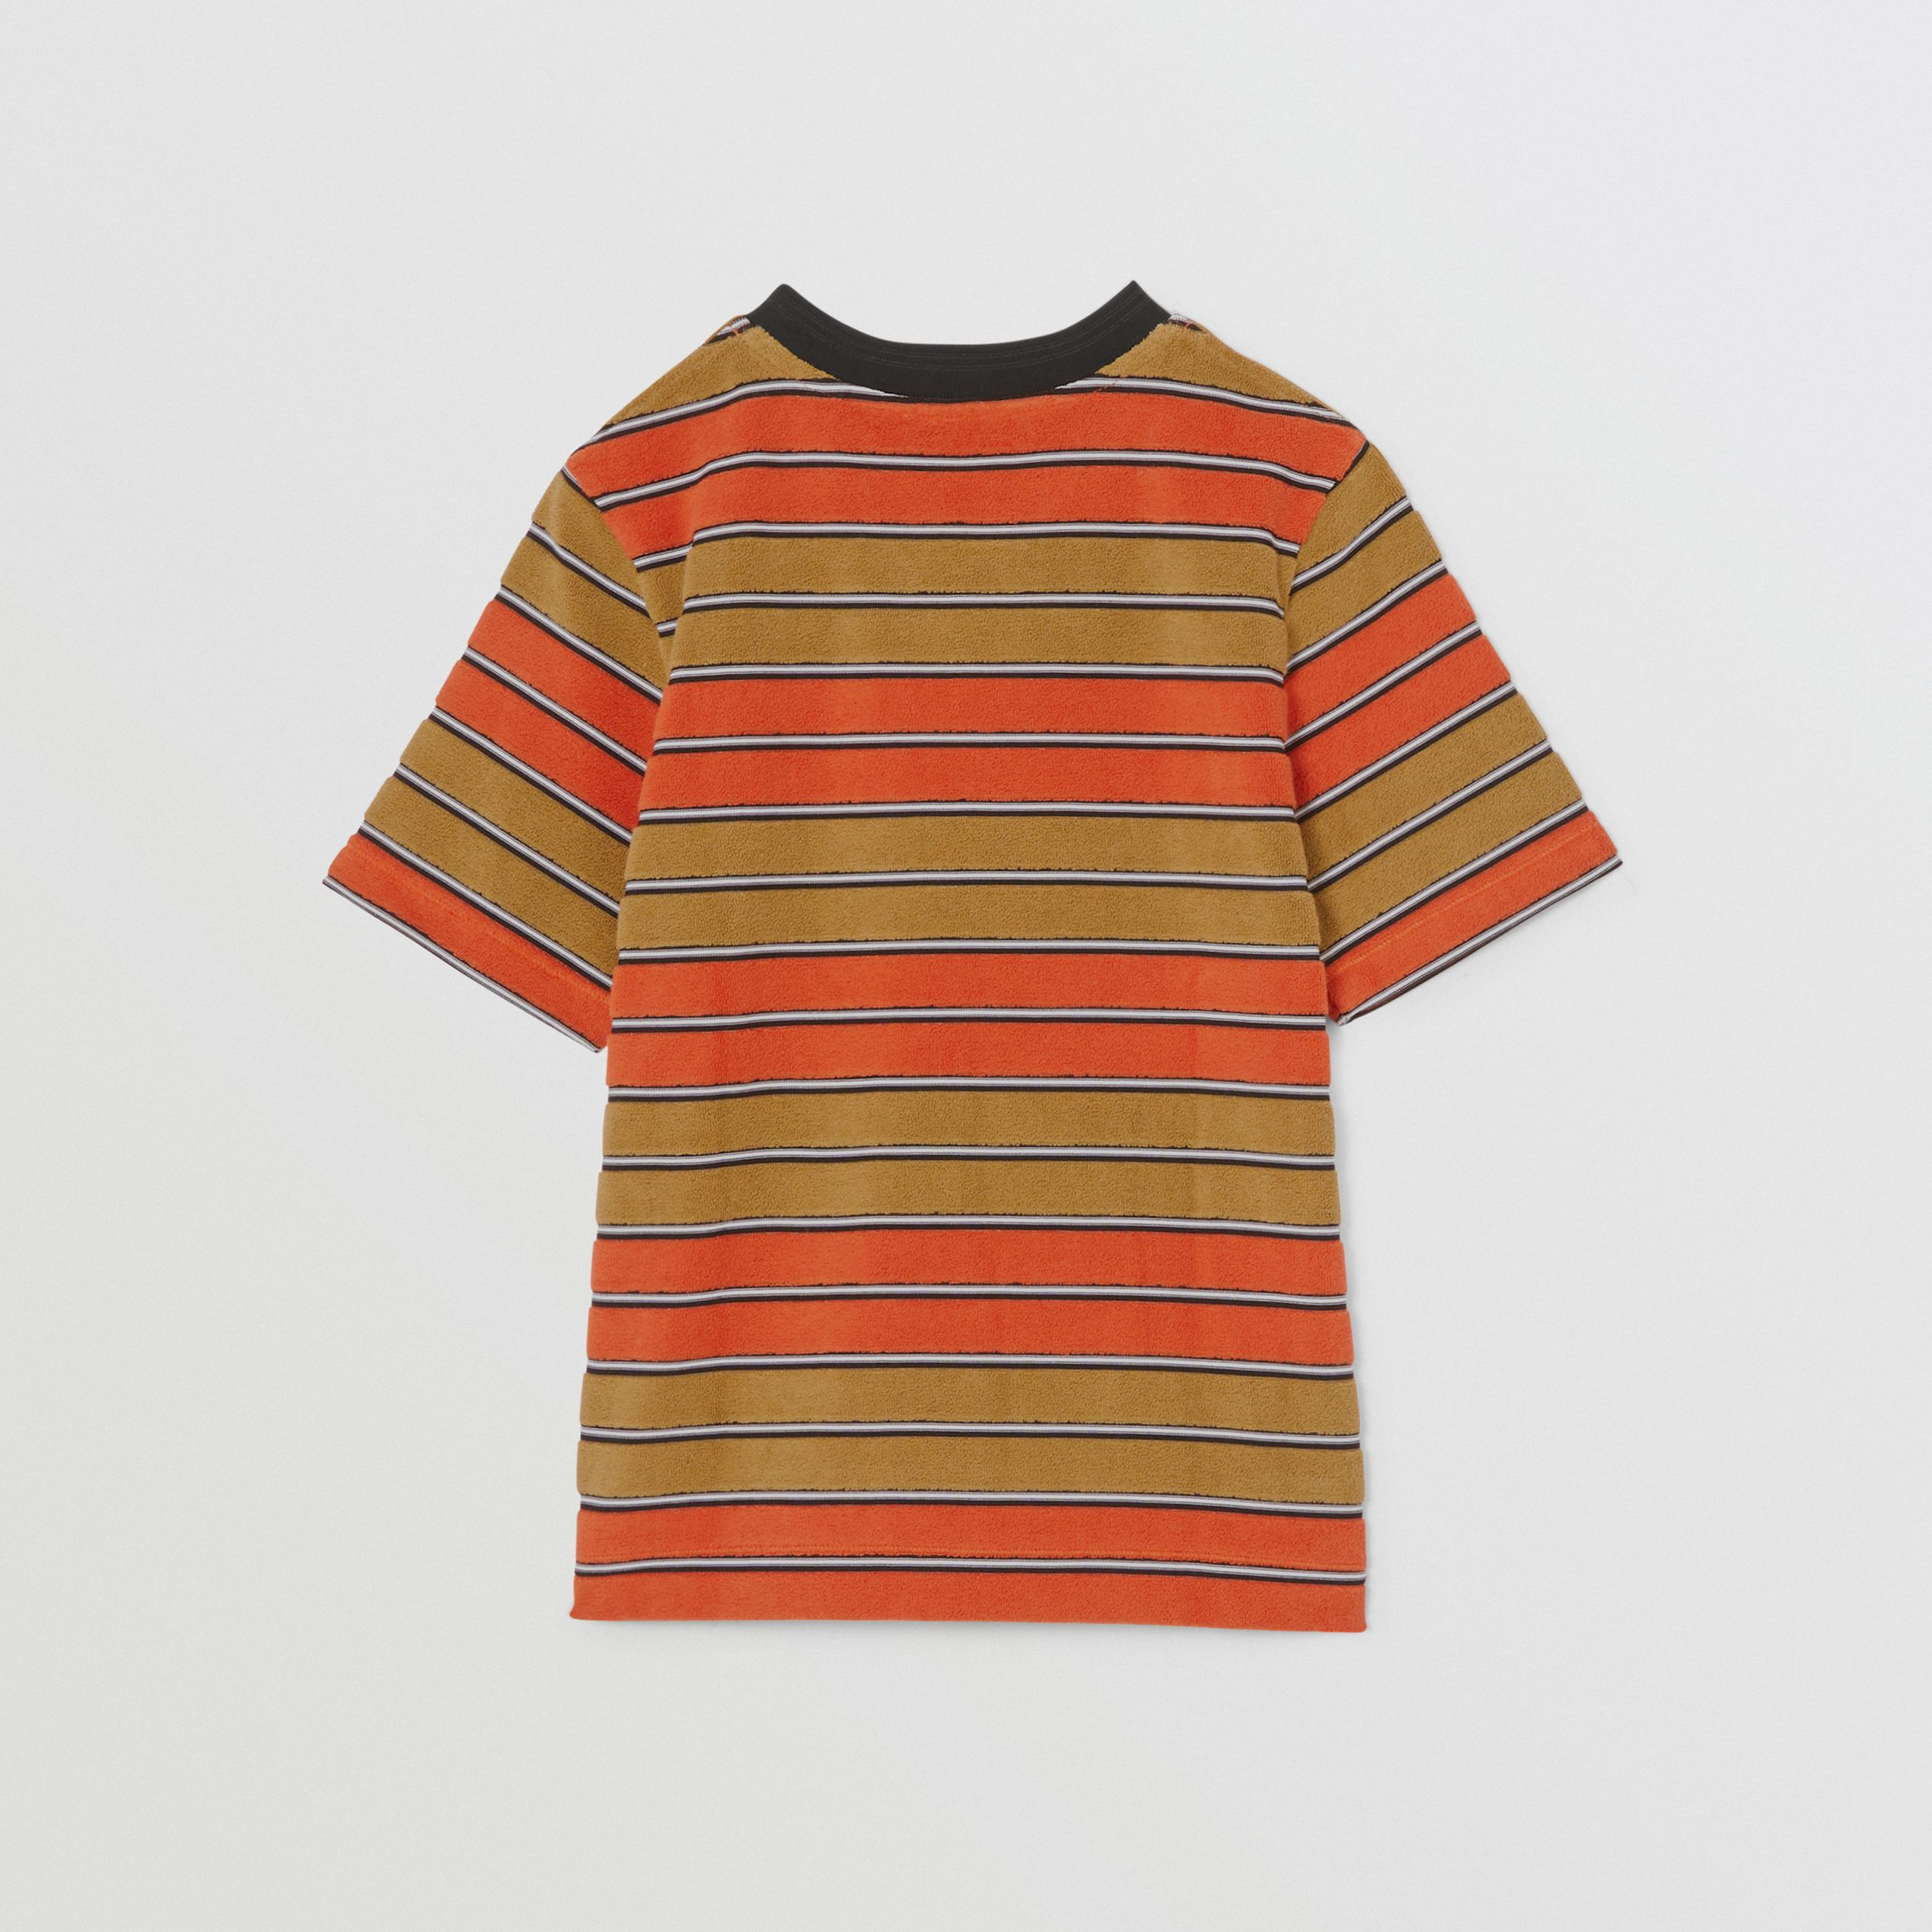 Logo Appliqué Striped Towelling T-shirt in Vermilion Red - Children | Burberry - 4